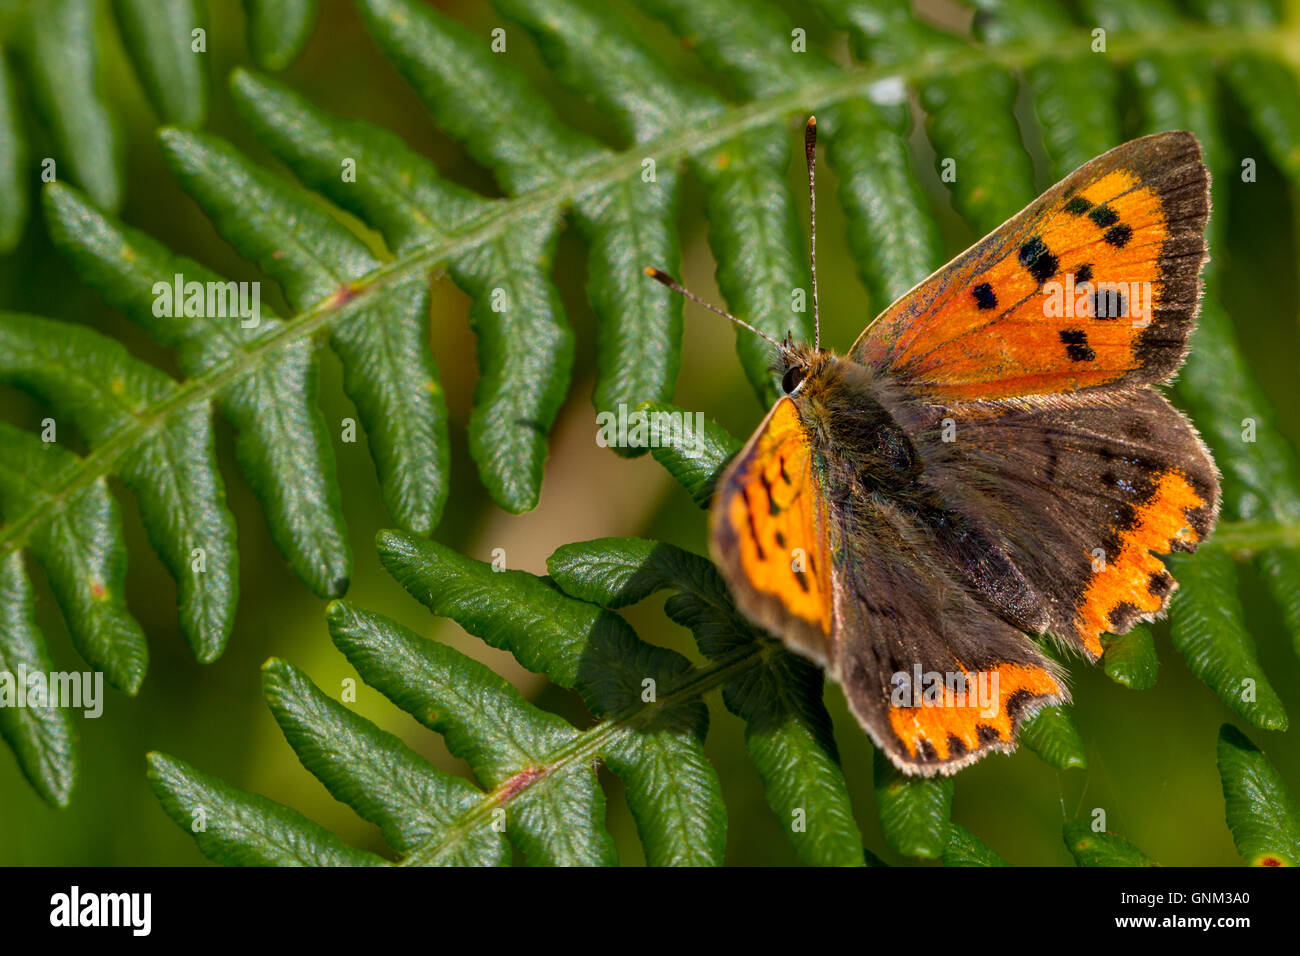 Small copper butterfly resting on fern, Yorkshire, UK - Stock Image